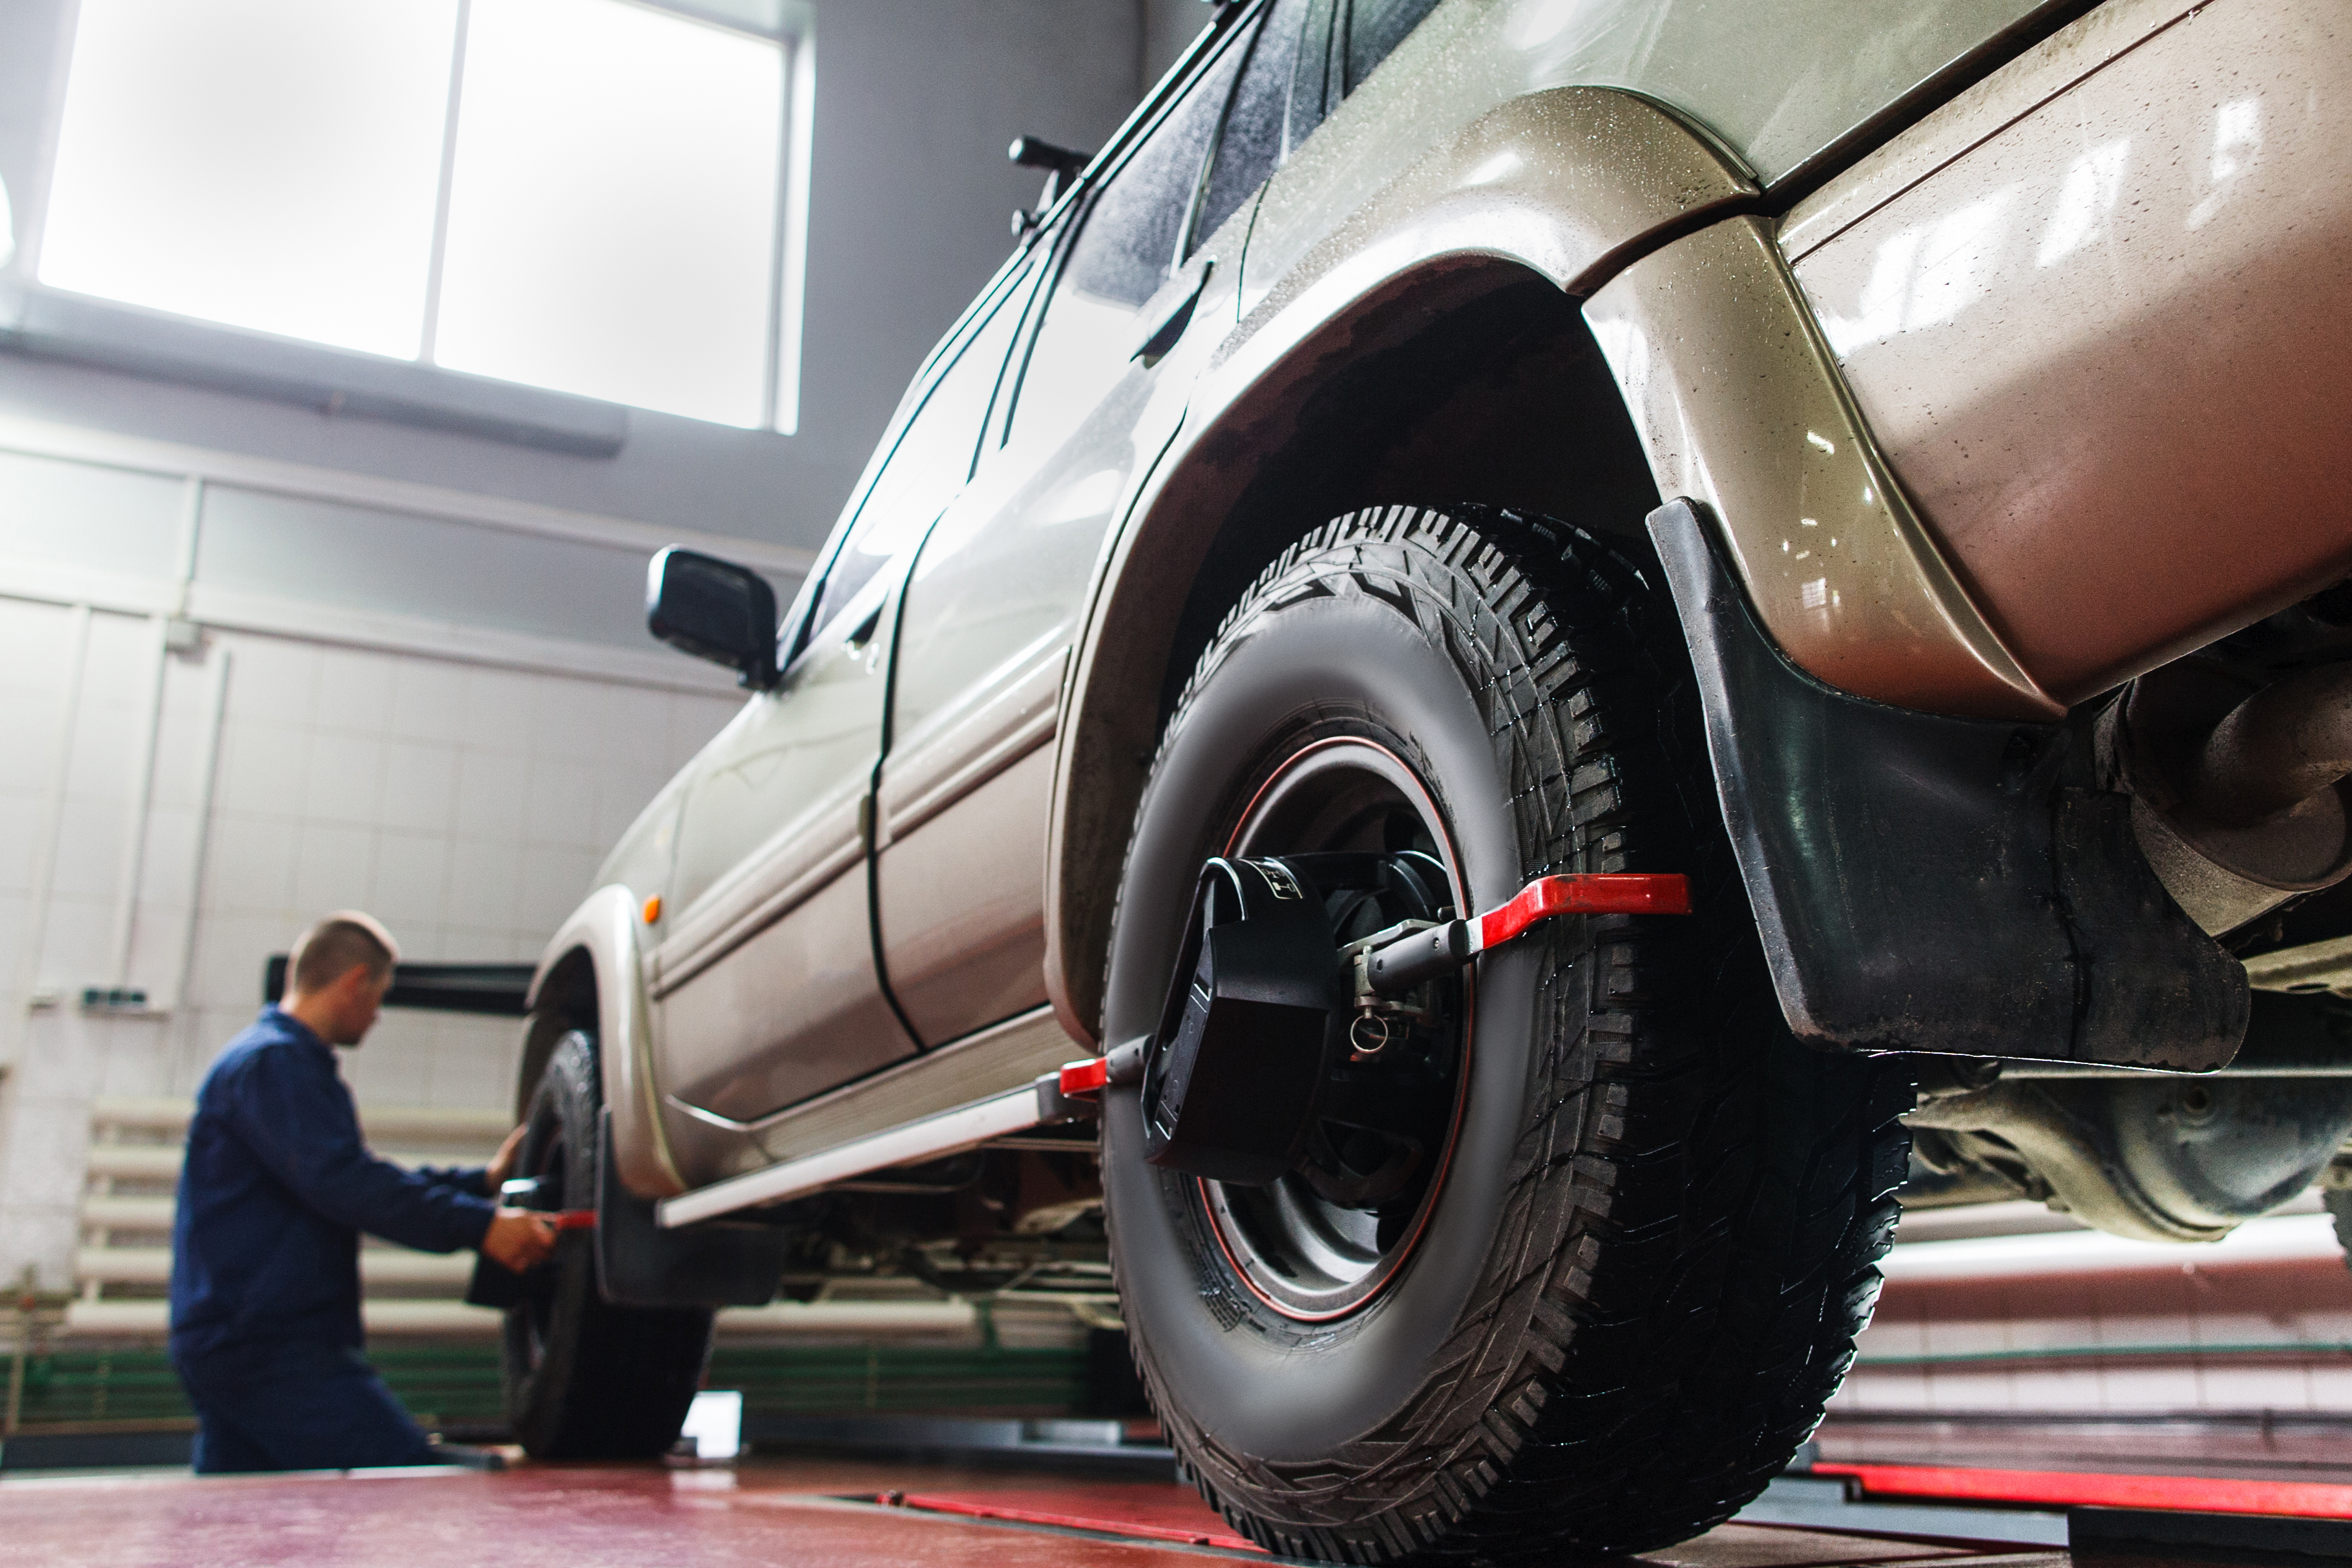 Is my Wheel Alignment off? 5 Signs Your Vehicle Needs a